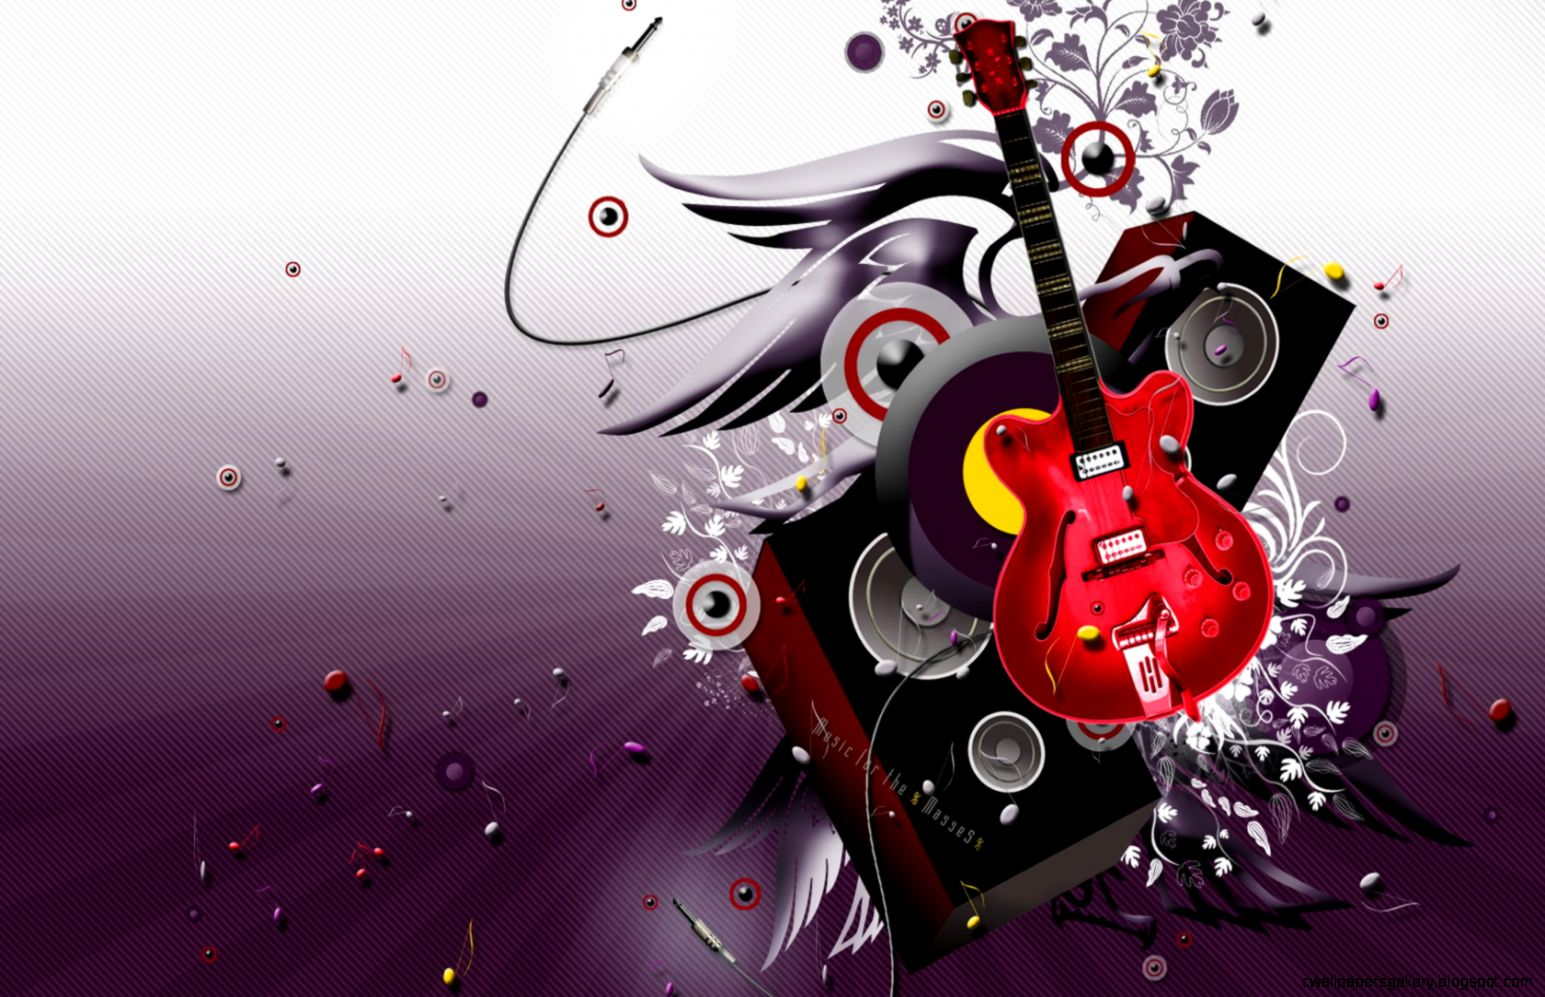 Cool Music Abstract Wallpaper Designs | Wallpapers Gallery